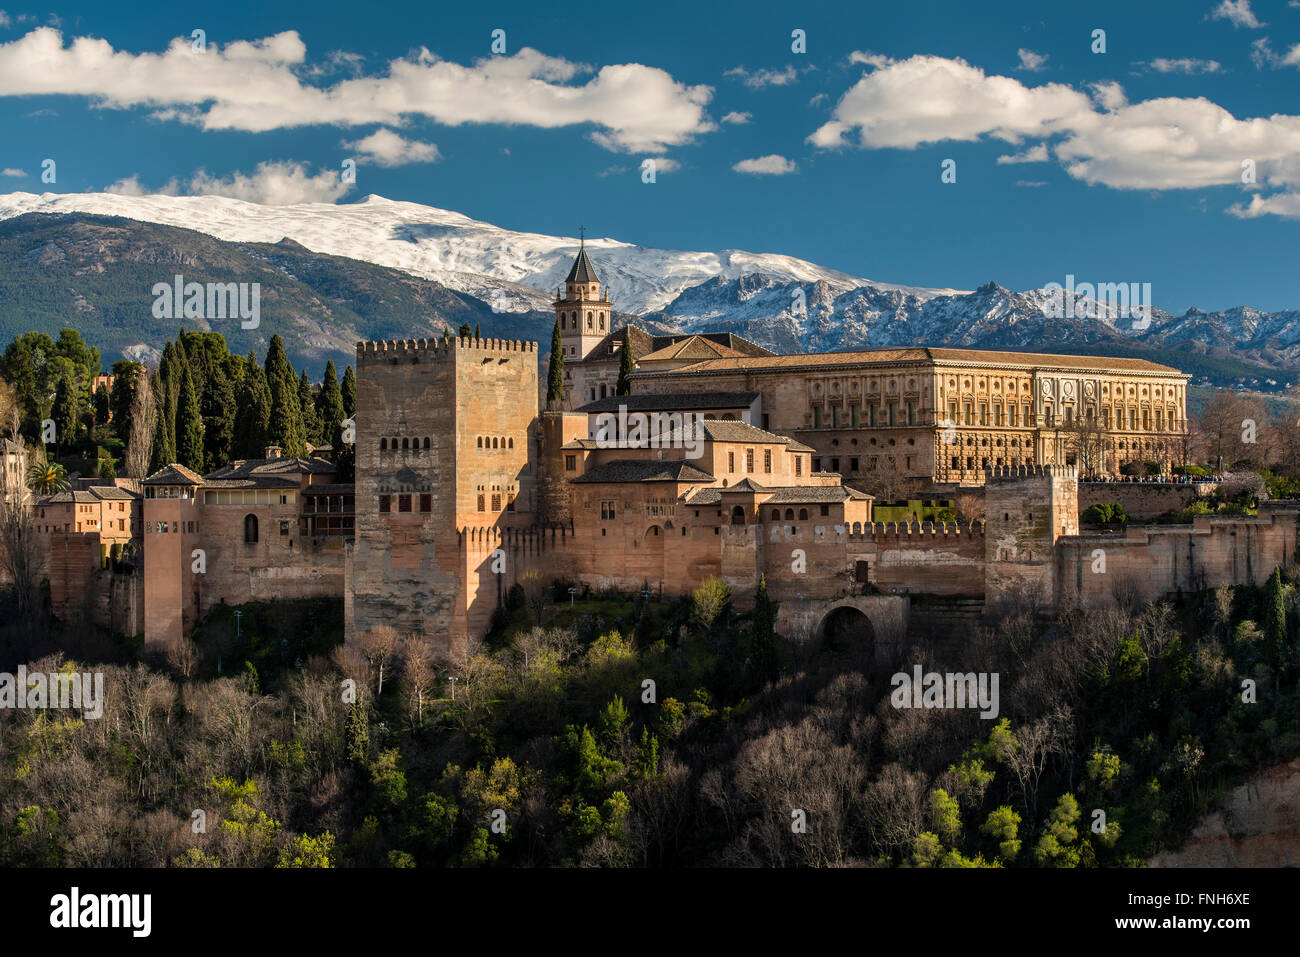 Alhambra palace with the snowy Sierra Nevada in the background, Granada, Andalusia, Spain Stock Photo